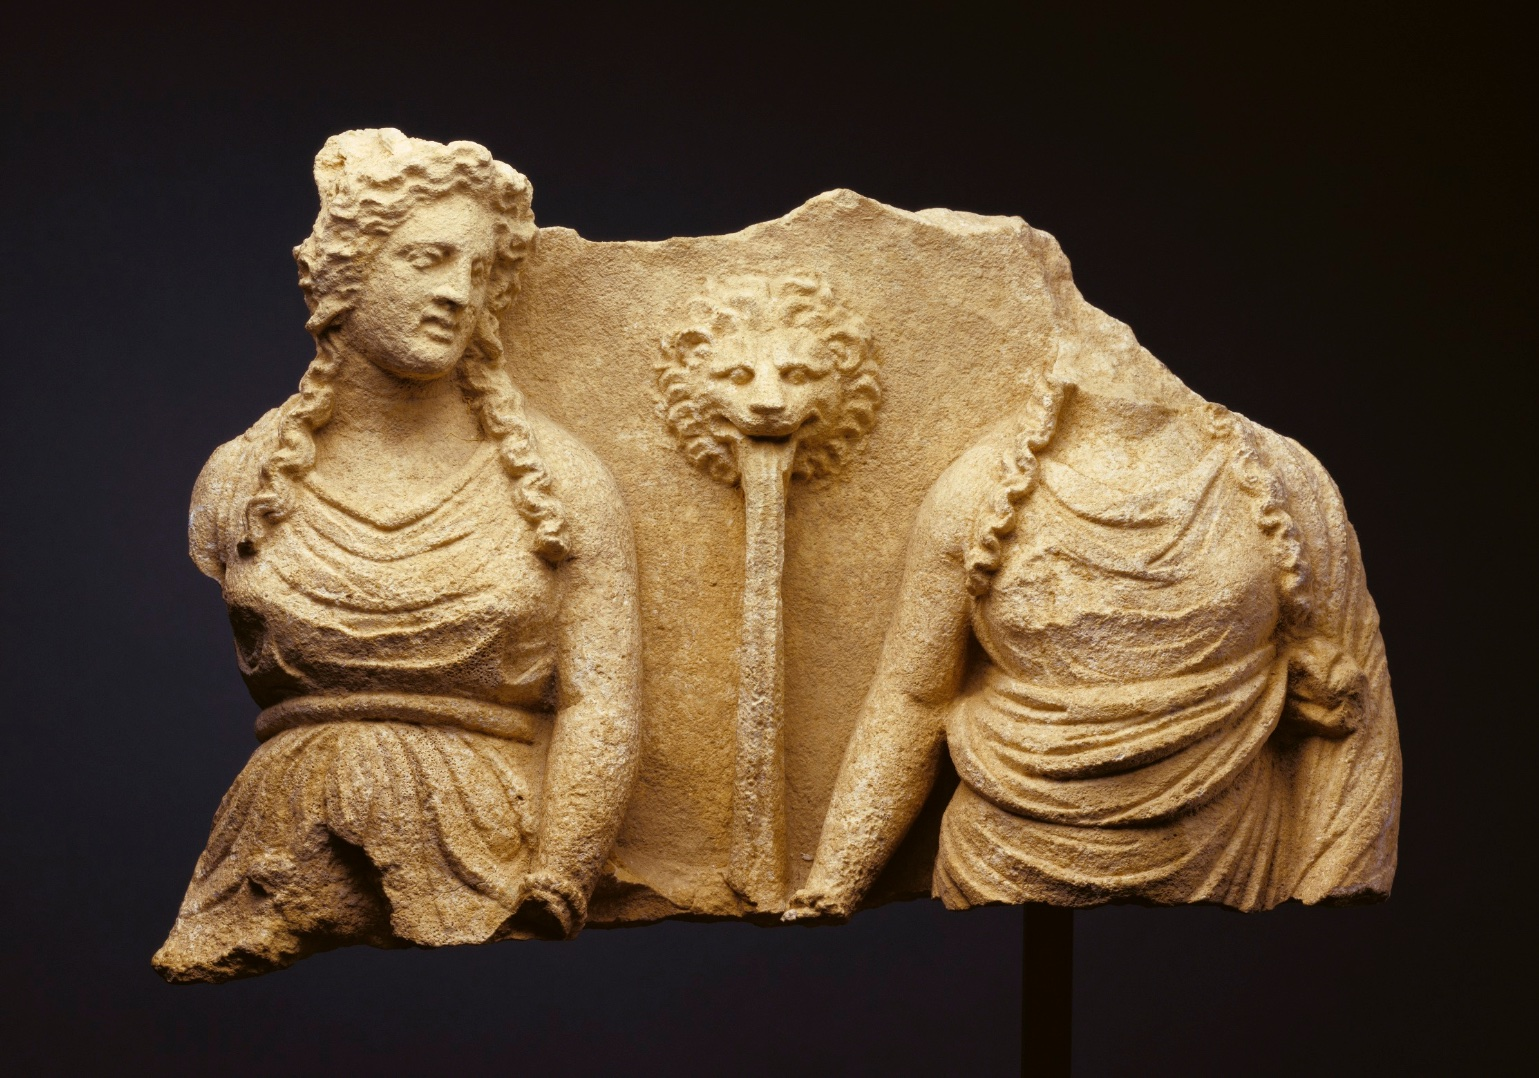 10 Powerful Women of Ancient Rome | All About History